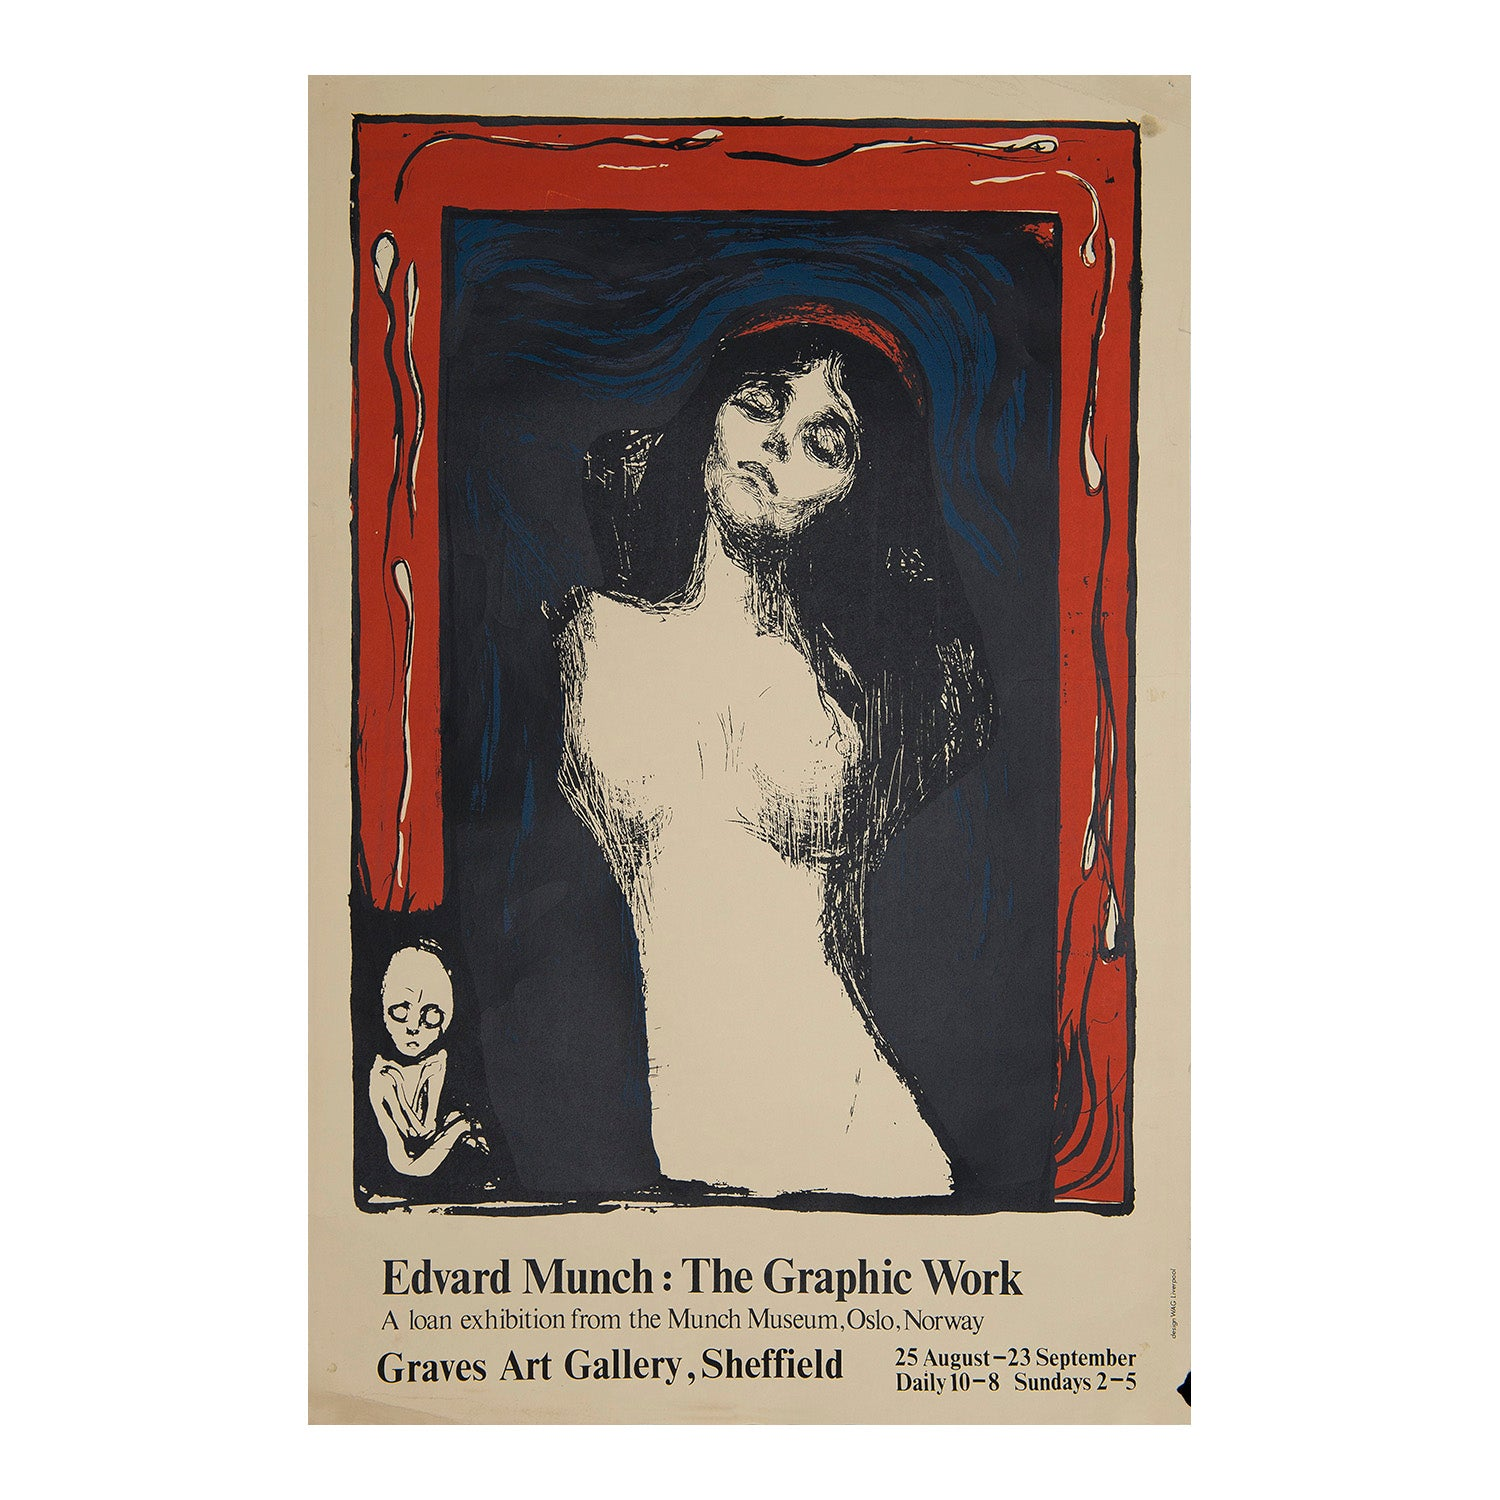 Edvard Munch: The Graphic Work